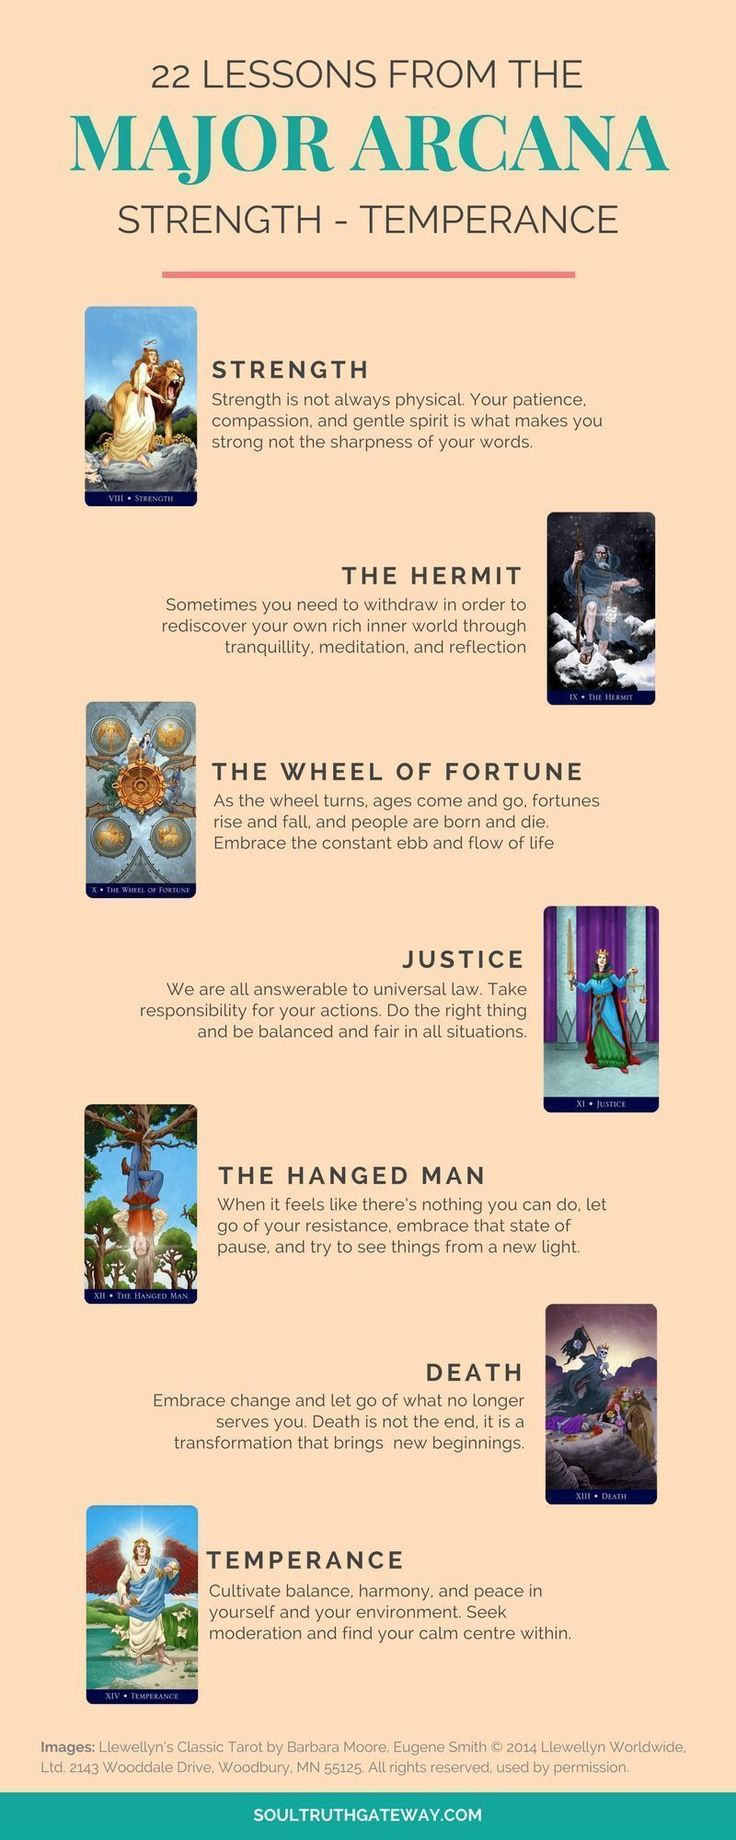 22 Lessons From The Major Arcana Part 2: Strength - Temperance | Tarot Card Meanings | Tarot Card Meanings Cheat Sheets | Tarot Cheat Sheet | Tarot Major Arcana | Tarot Major Arcana Meanings | Fools Journey Tarot #tarot #soultruthgateway #tarotcardscheatsheets #tarotcardsmeaning